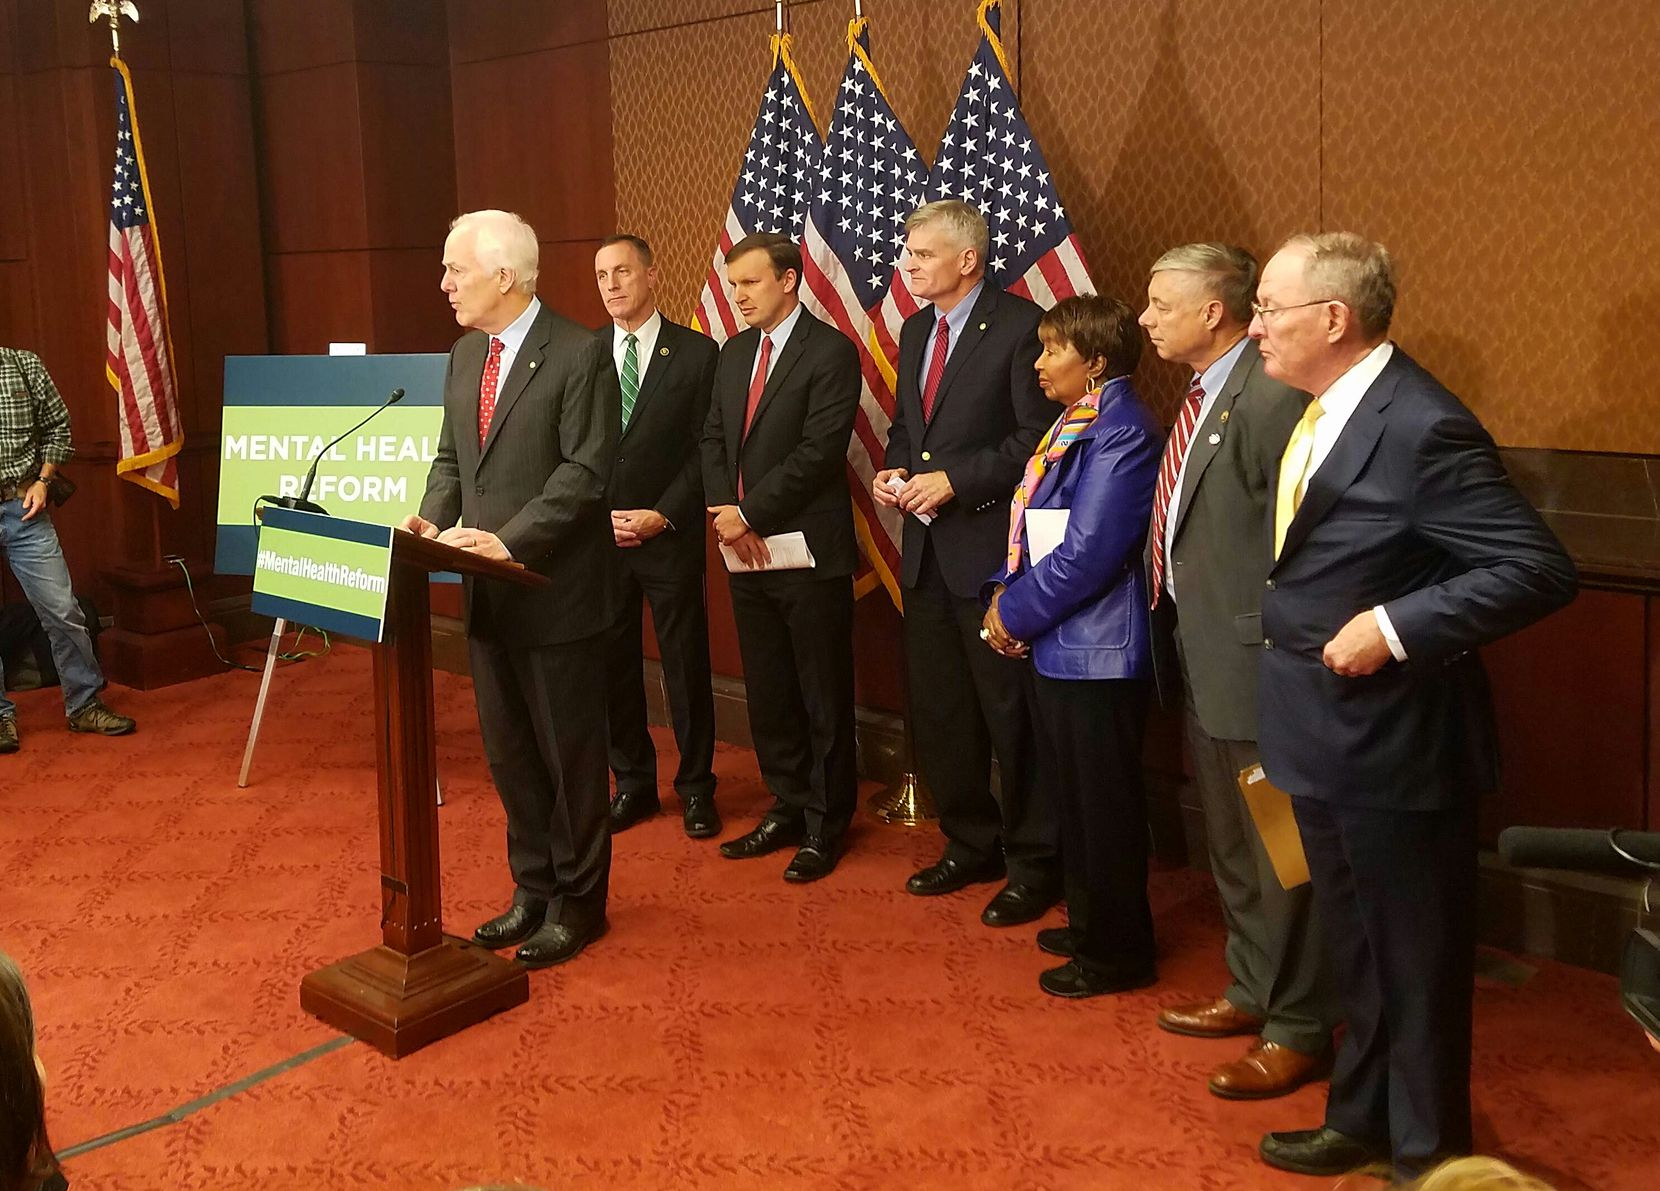 "Texas Sen. John. Cornyn, flanked by Rep. Eddie Bernice Johnson and other lawmakers, cheered the mental health measure as a way to help Americans get the ""sort of treatment they need in order to turn their lives around."" (Tom Benning/Staff)"